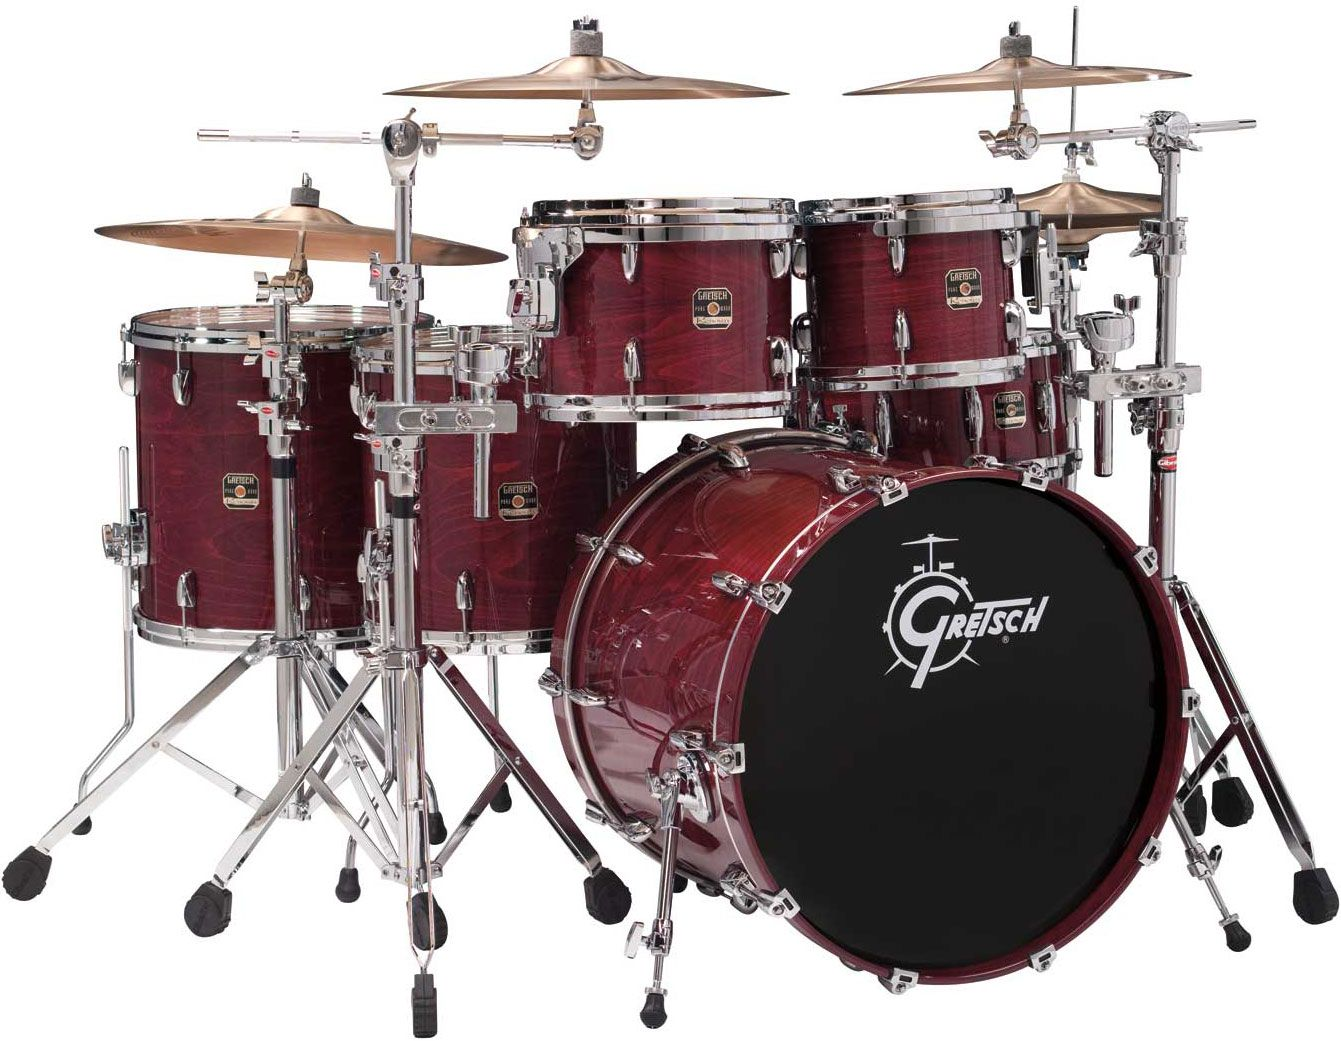 gretsch drums renown purewood beech limited edition dark cherry places to visit gretsch. Black Bedroom Furniture Sets. Home Design Ideas